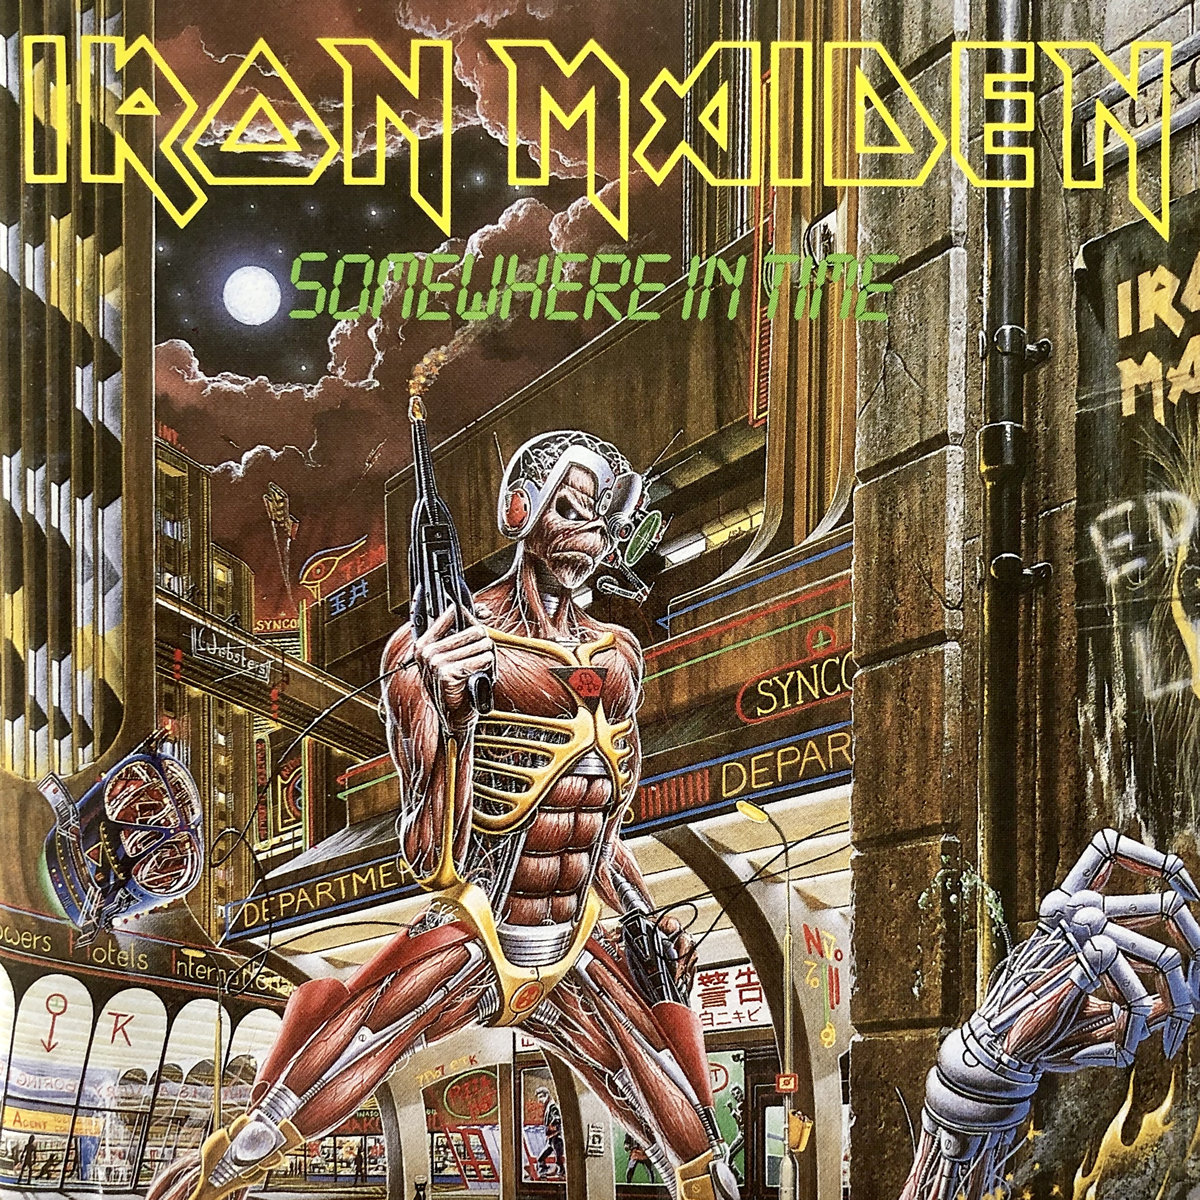 Diamonds & Rust: Iron Maiden – Somewhere In Time, A